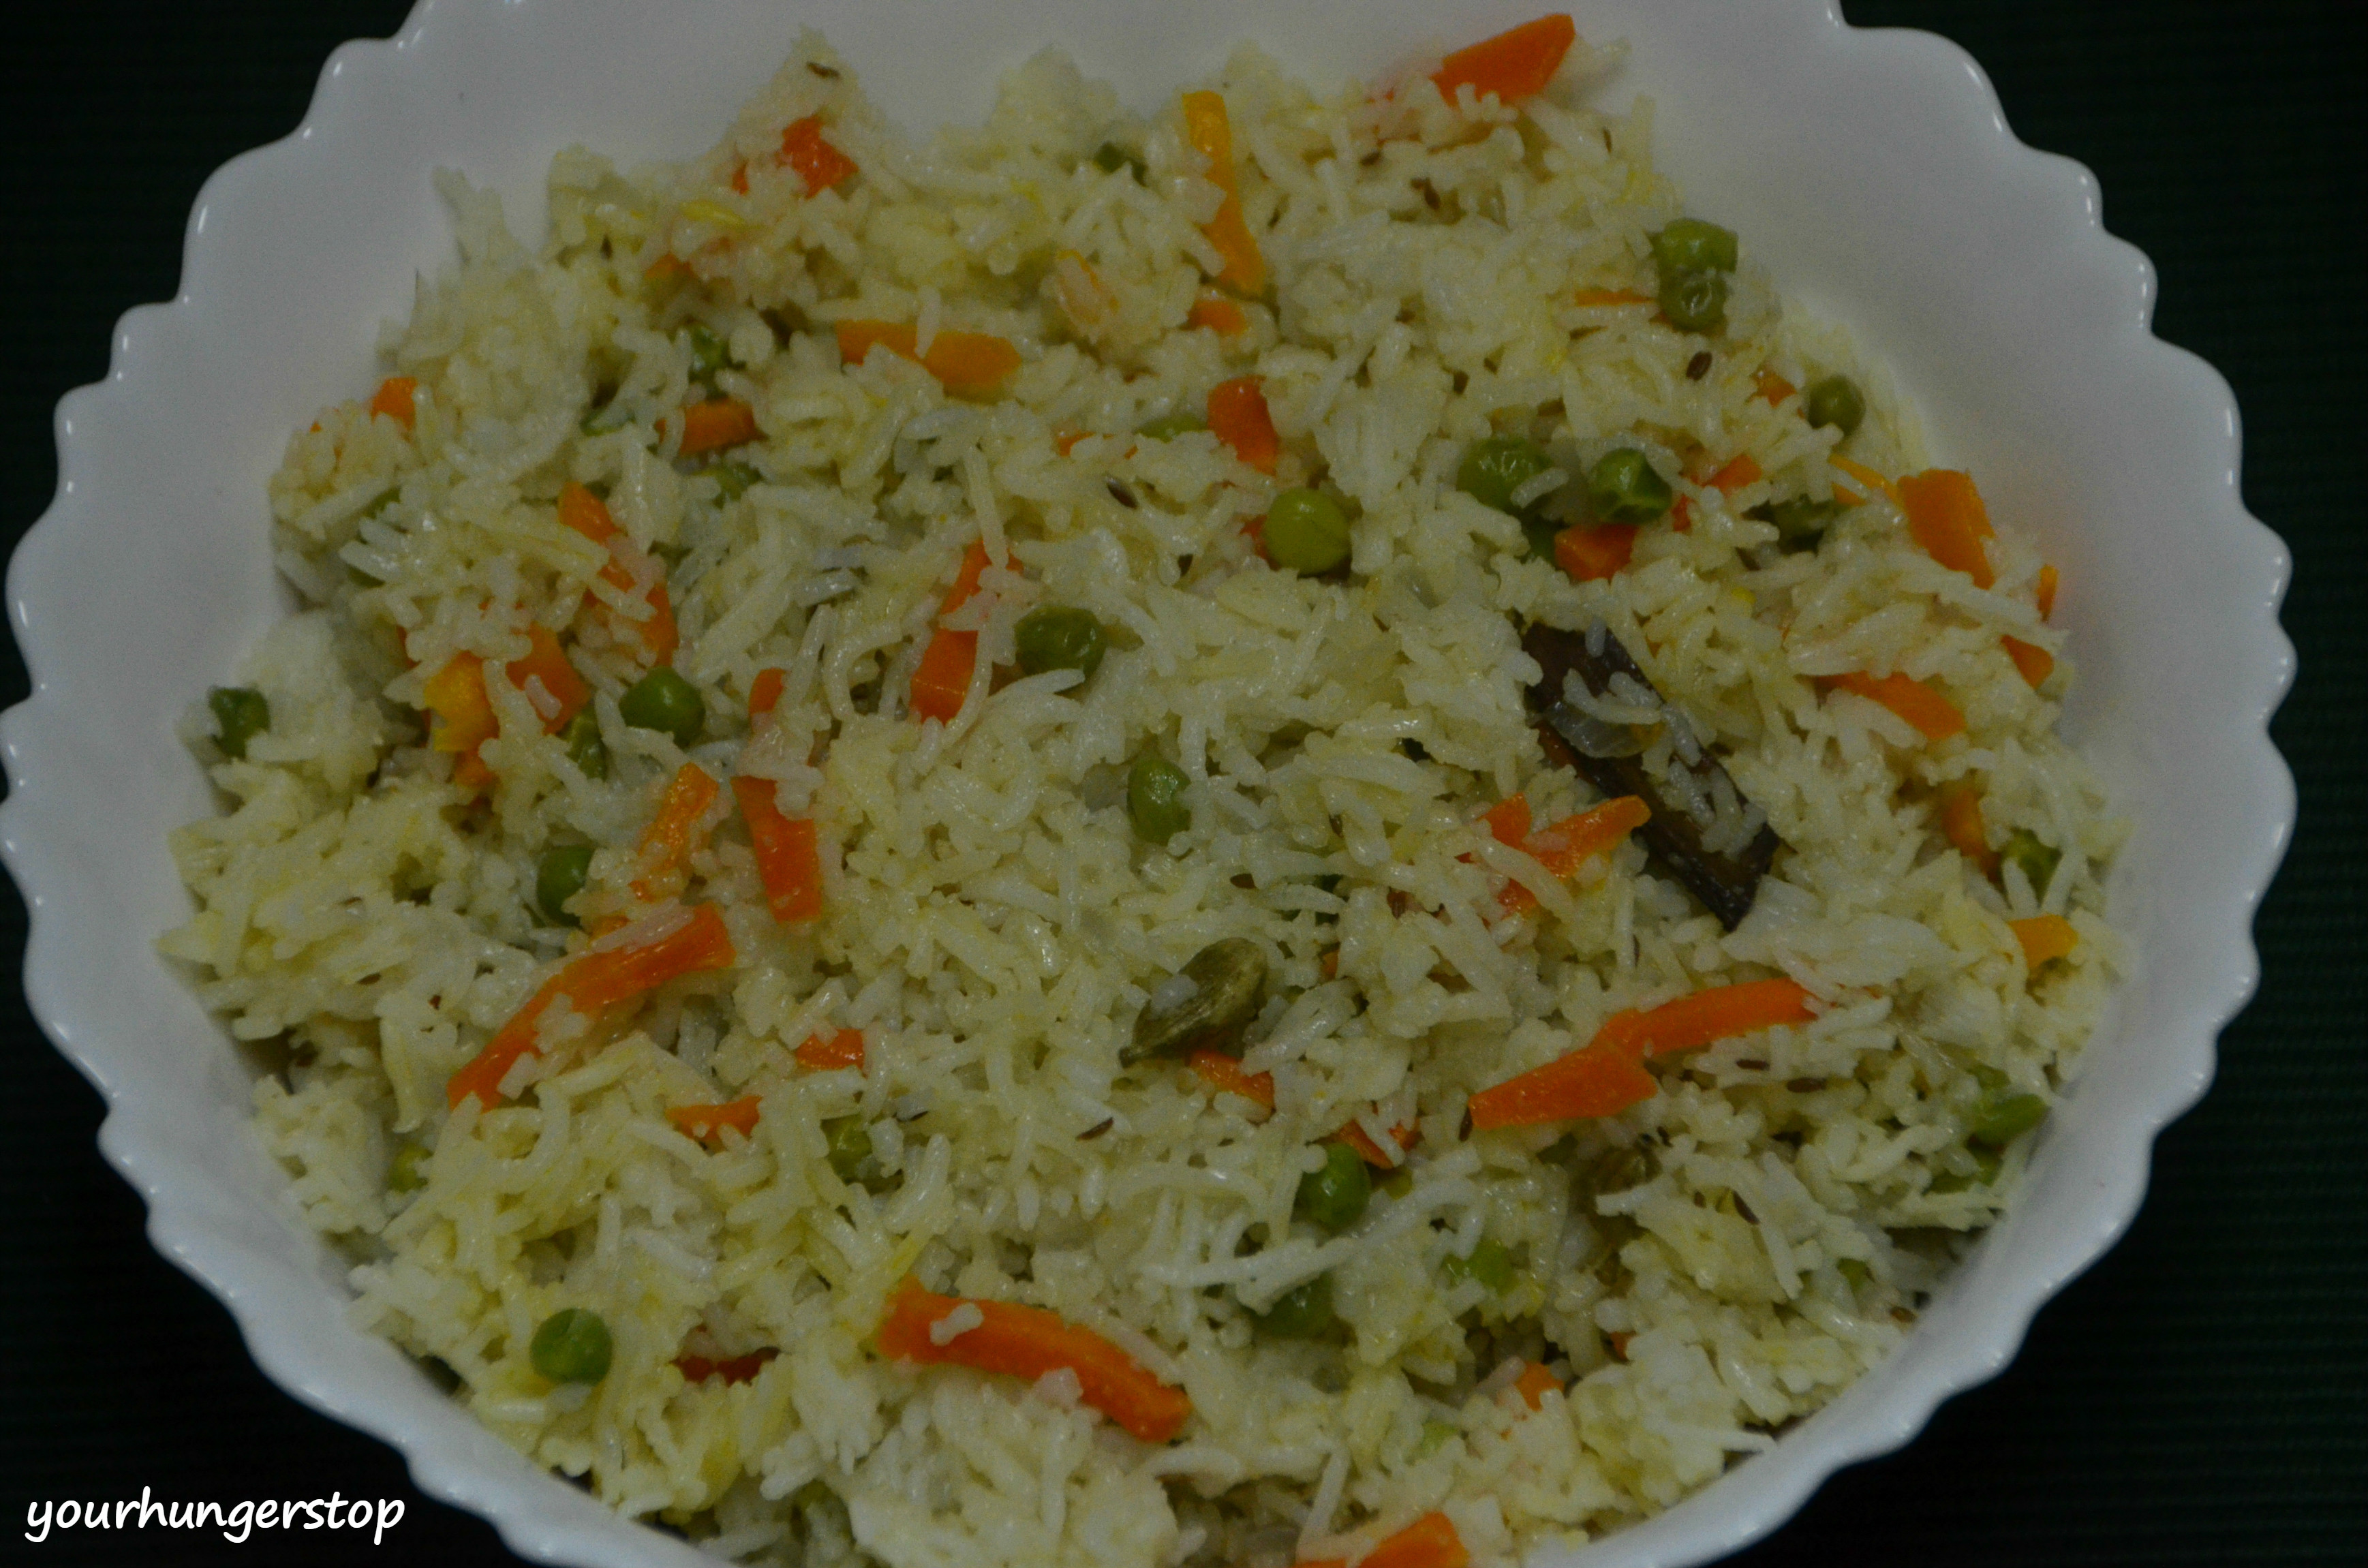 Vegetable pulao yourhungerstop vegetable pulao is a rice dish prepared by cooking rice with various vegetables and spices it is a very simple recipe and gets ready in a jiffy forumfinder Image collections